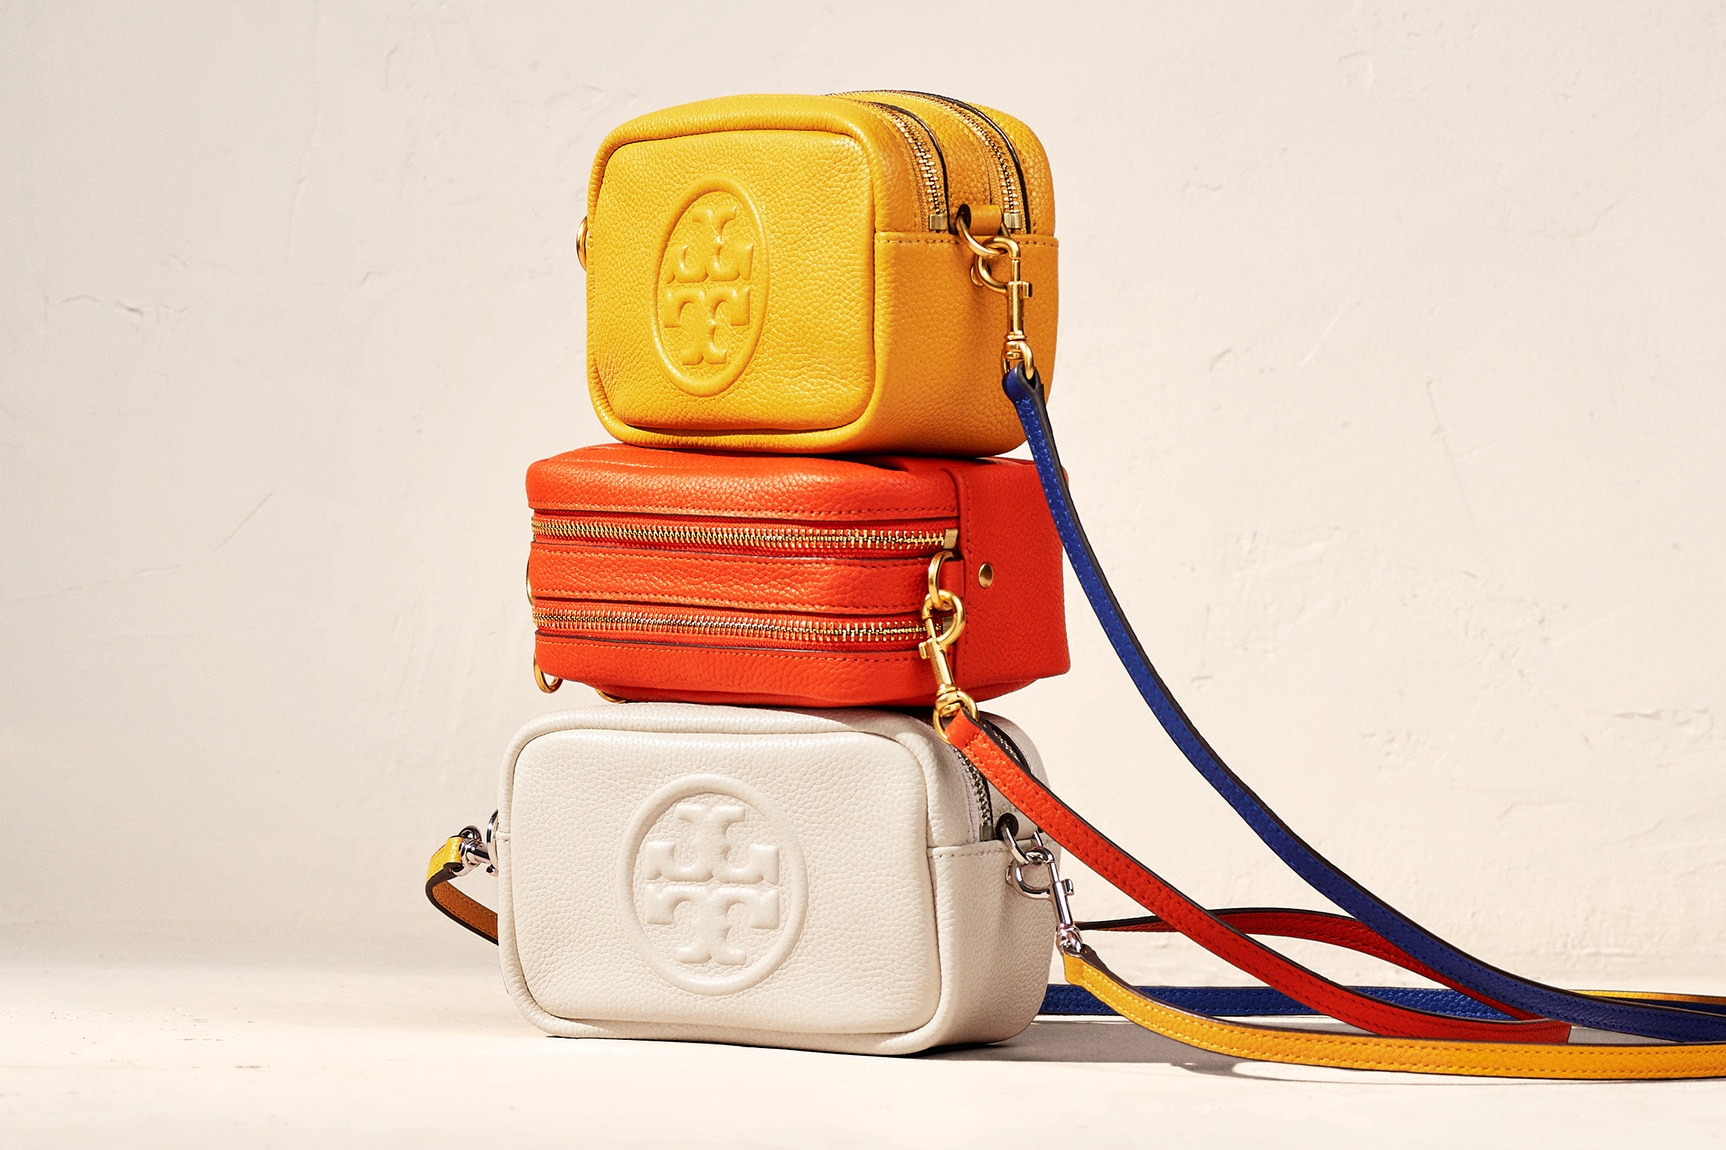 Waterproof Library Bags Australia Tory Burch Women S Handbags Clutches Bags New Arrivals Tory